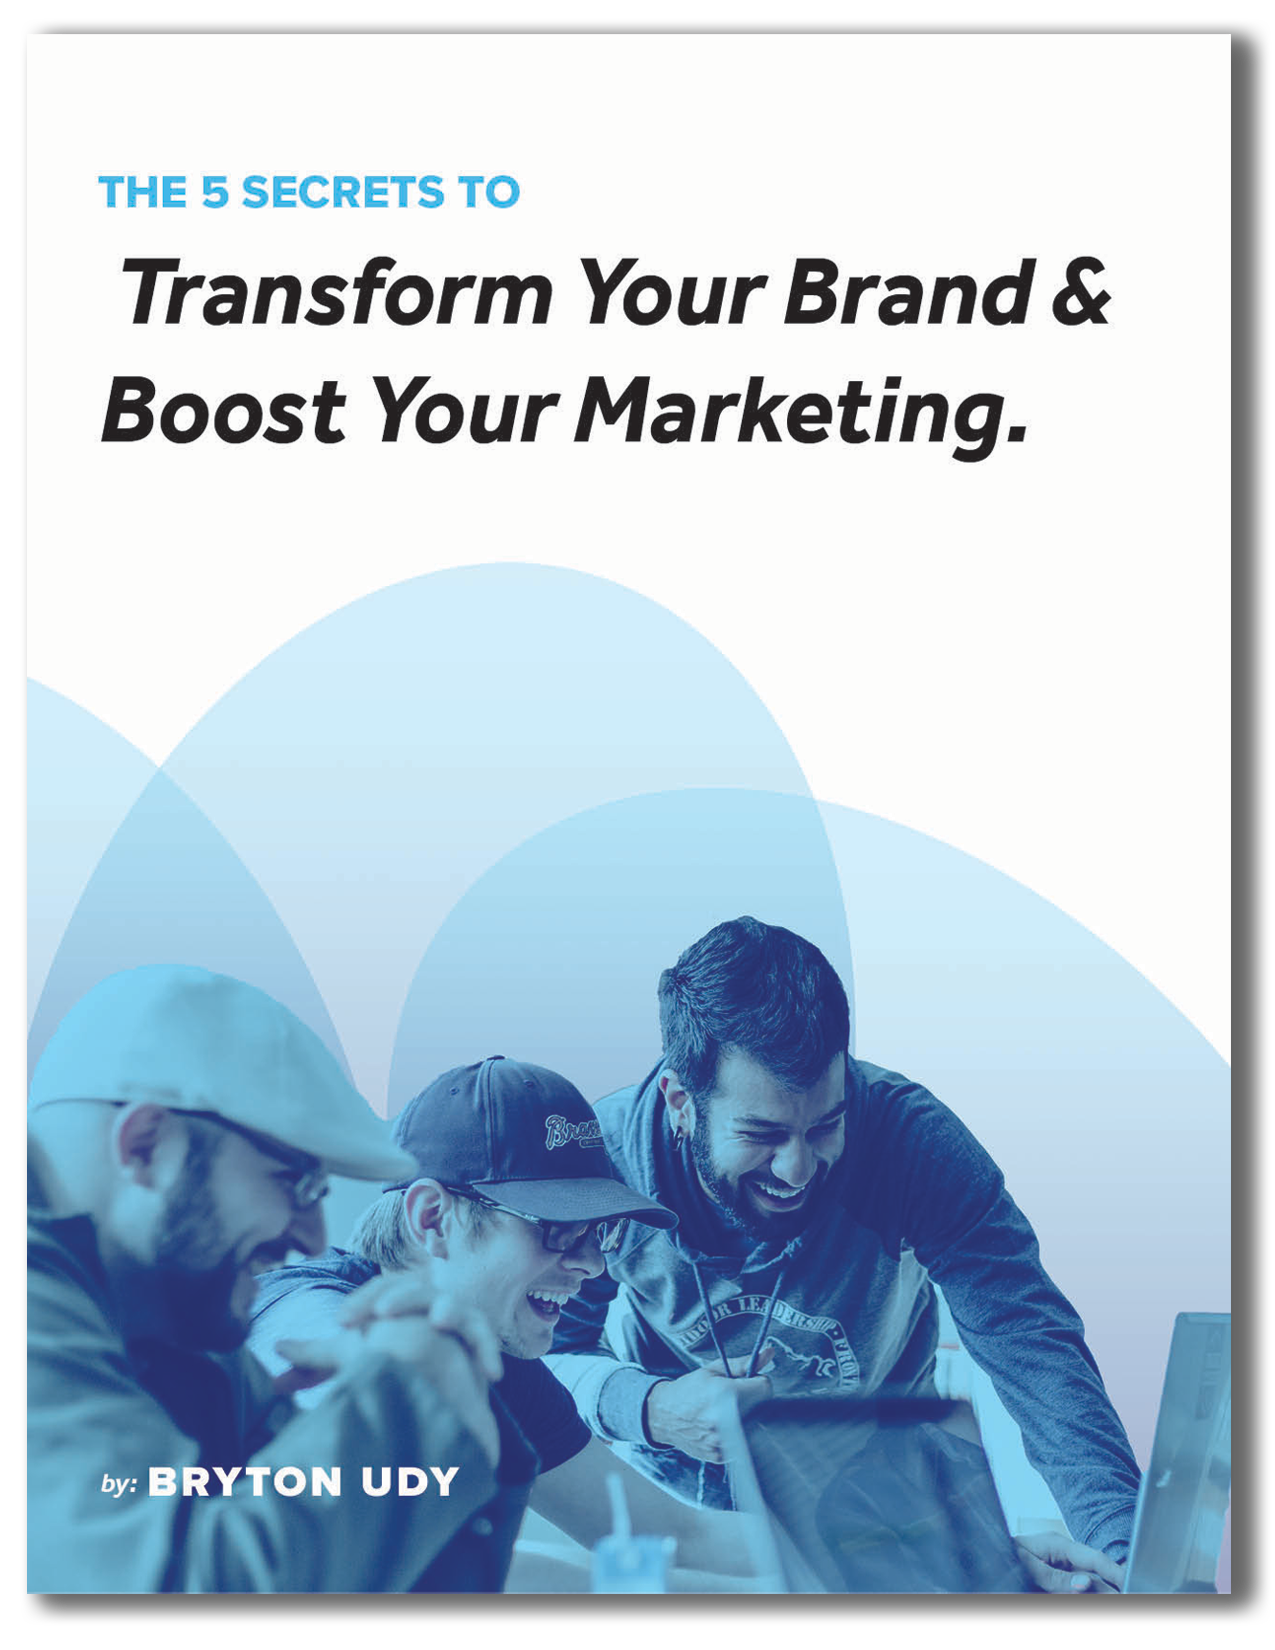 Download The Free Ebook! - Learn the 5 secrets that successful brands know that help them boost their marketing and stand out to their customers.